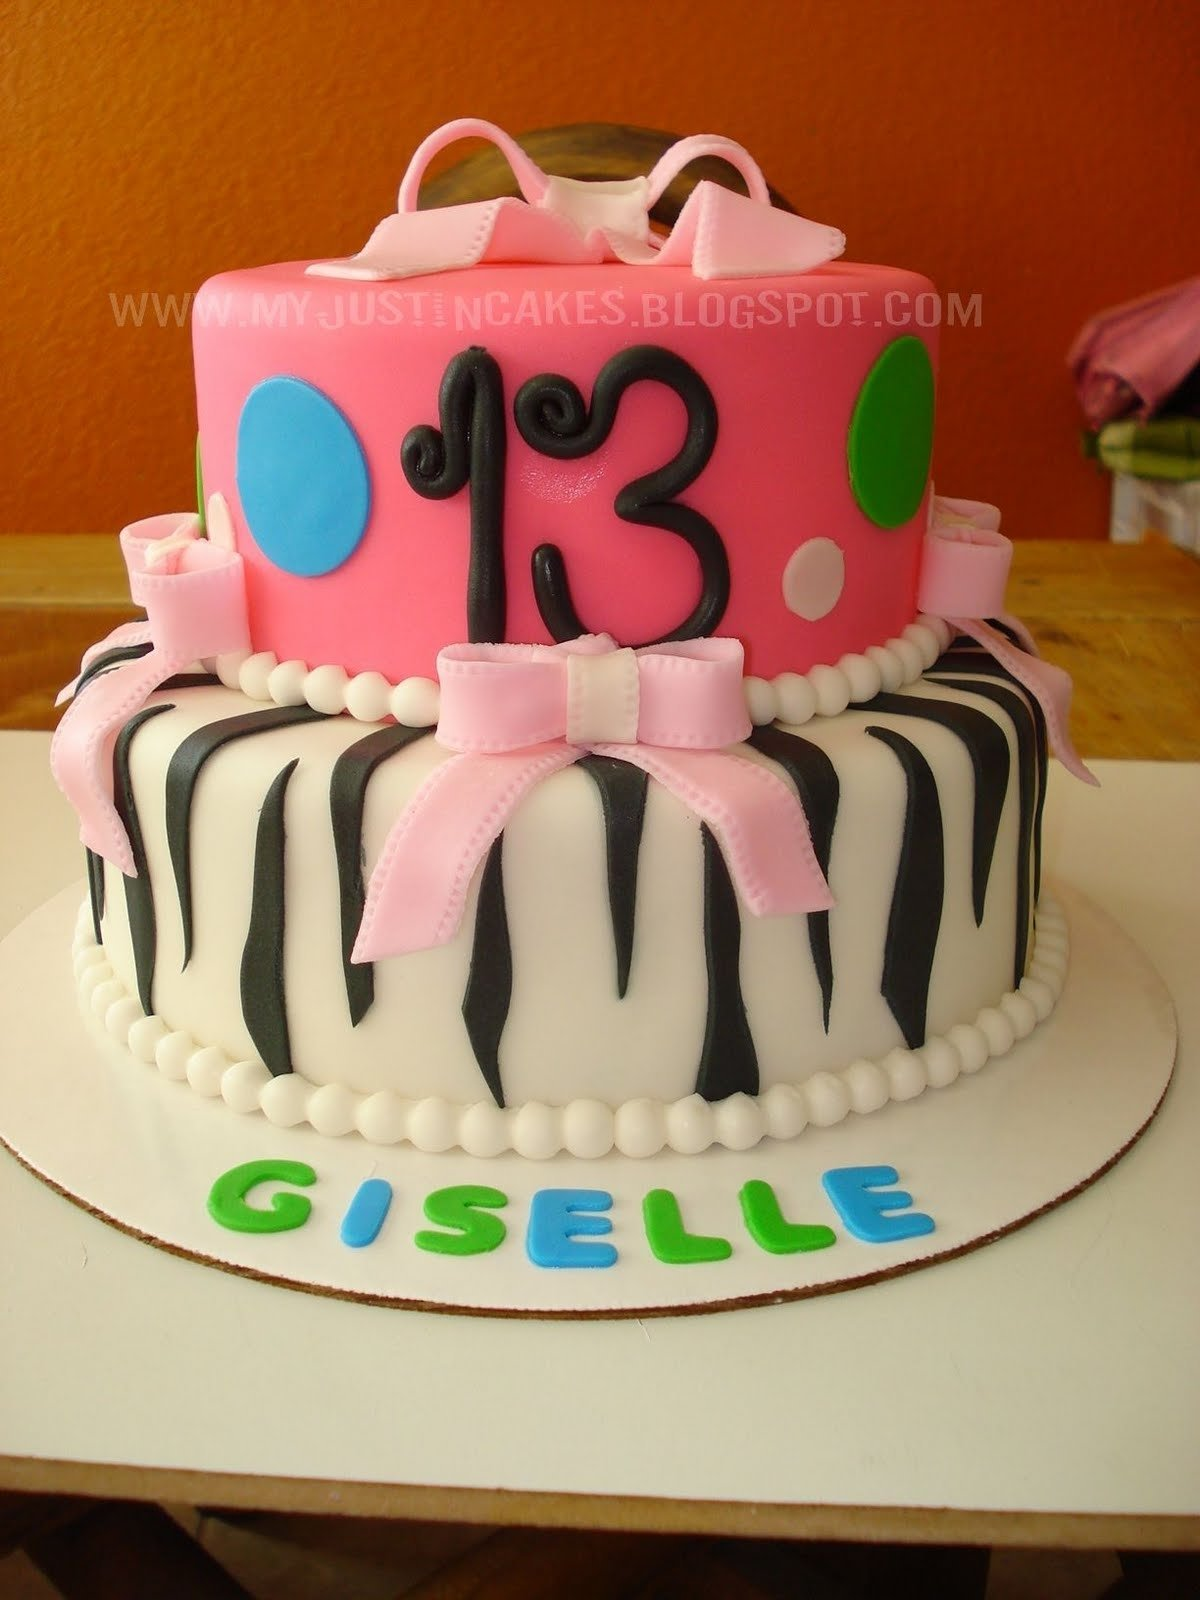 10 Nice 13 Year Old Birthday Party Ideas For Girls 5 year old birthday girl party ideas just in cakes 13 year old 2 2021